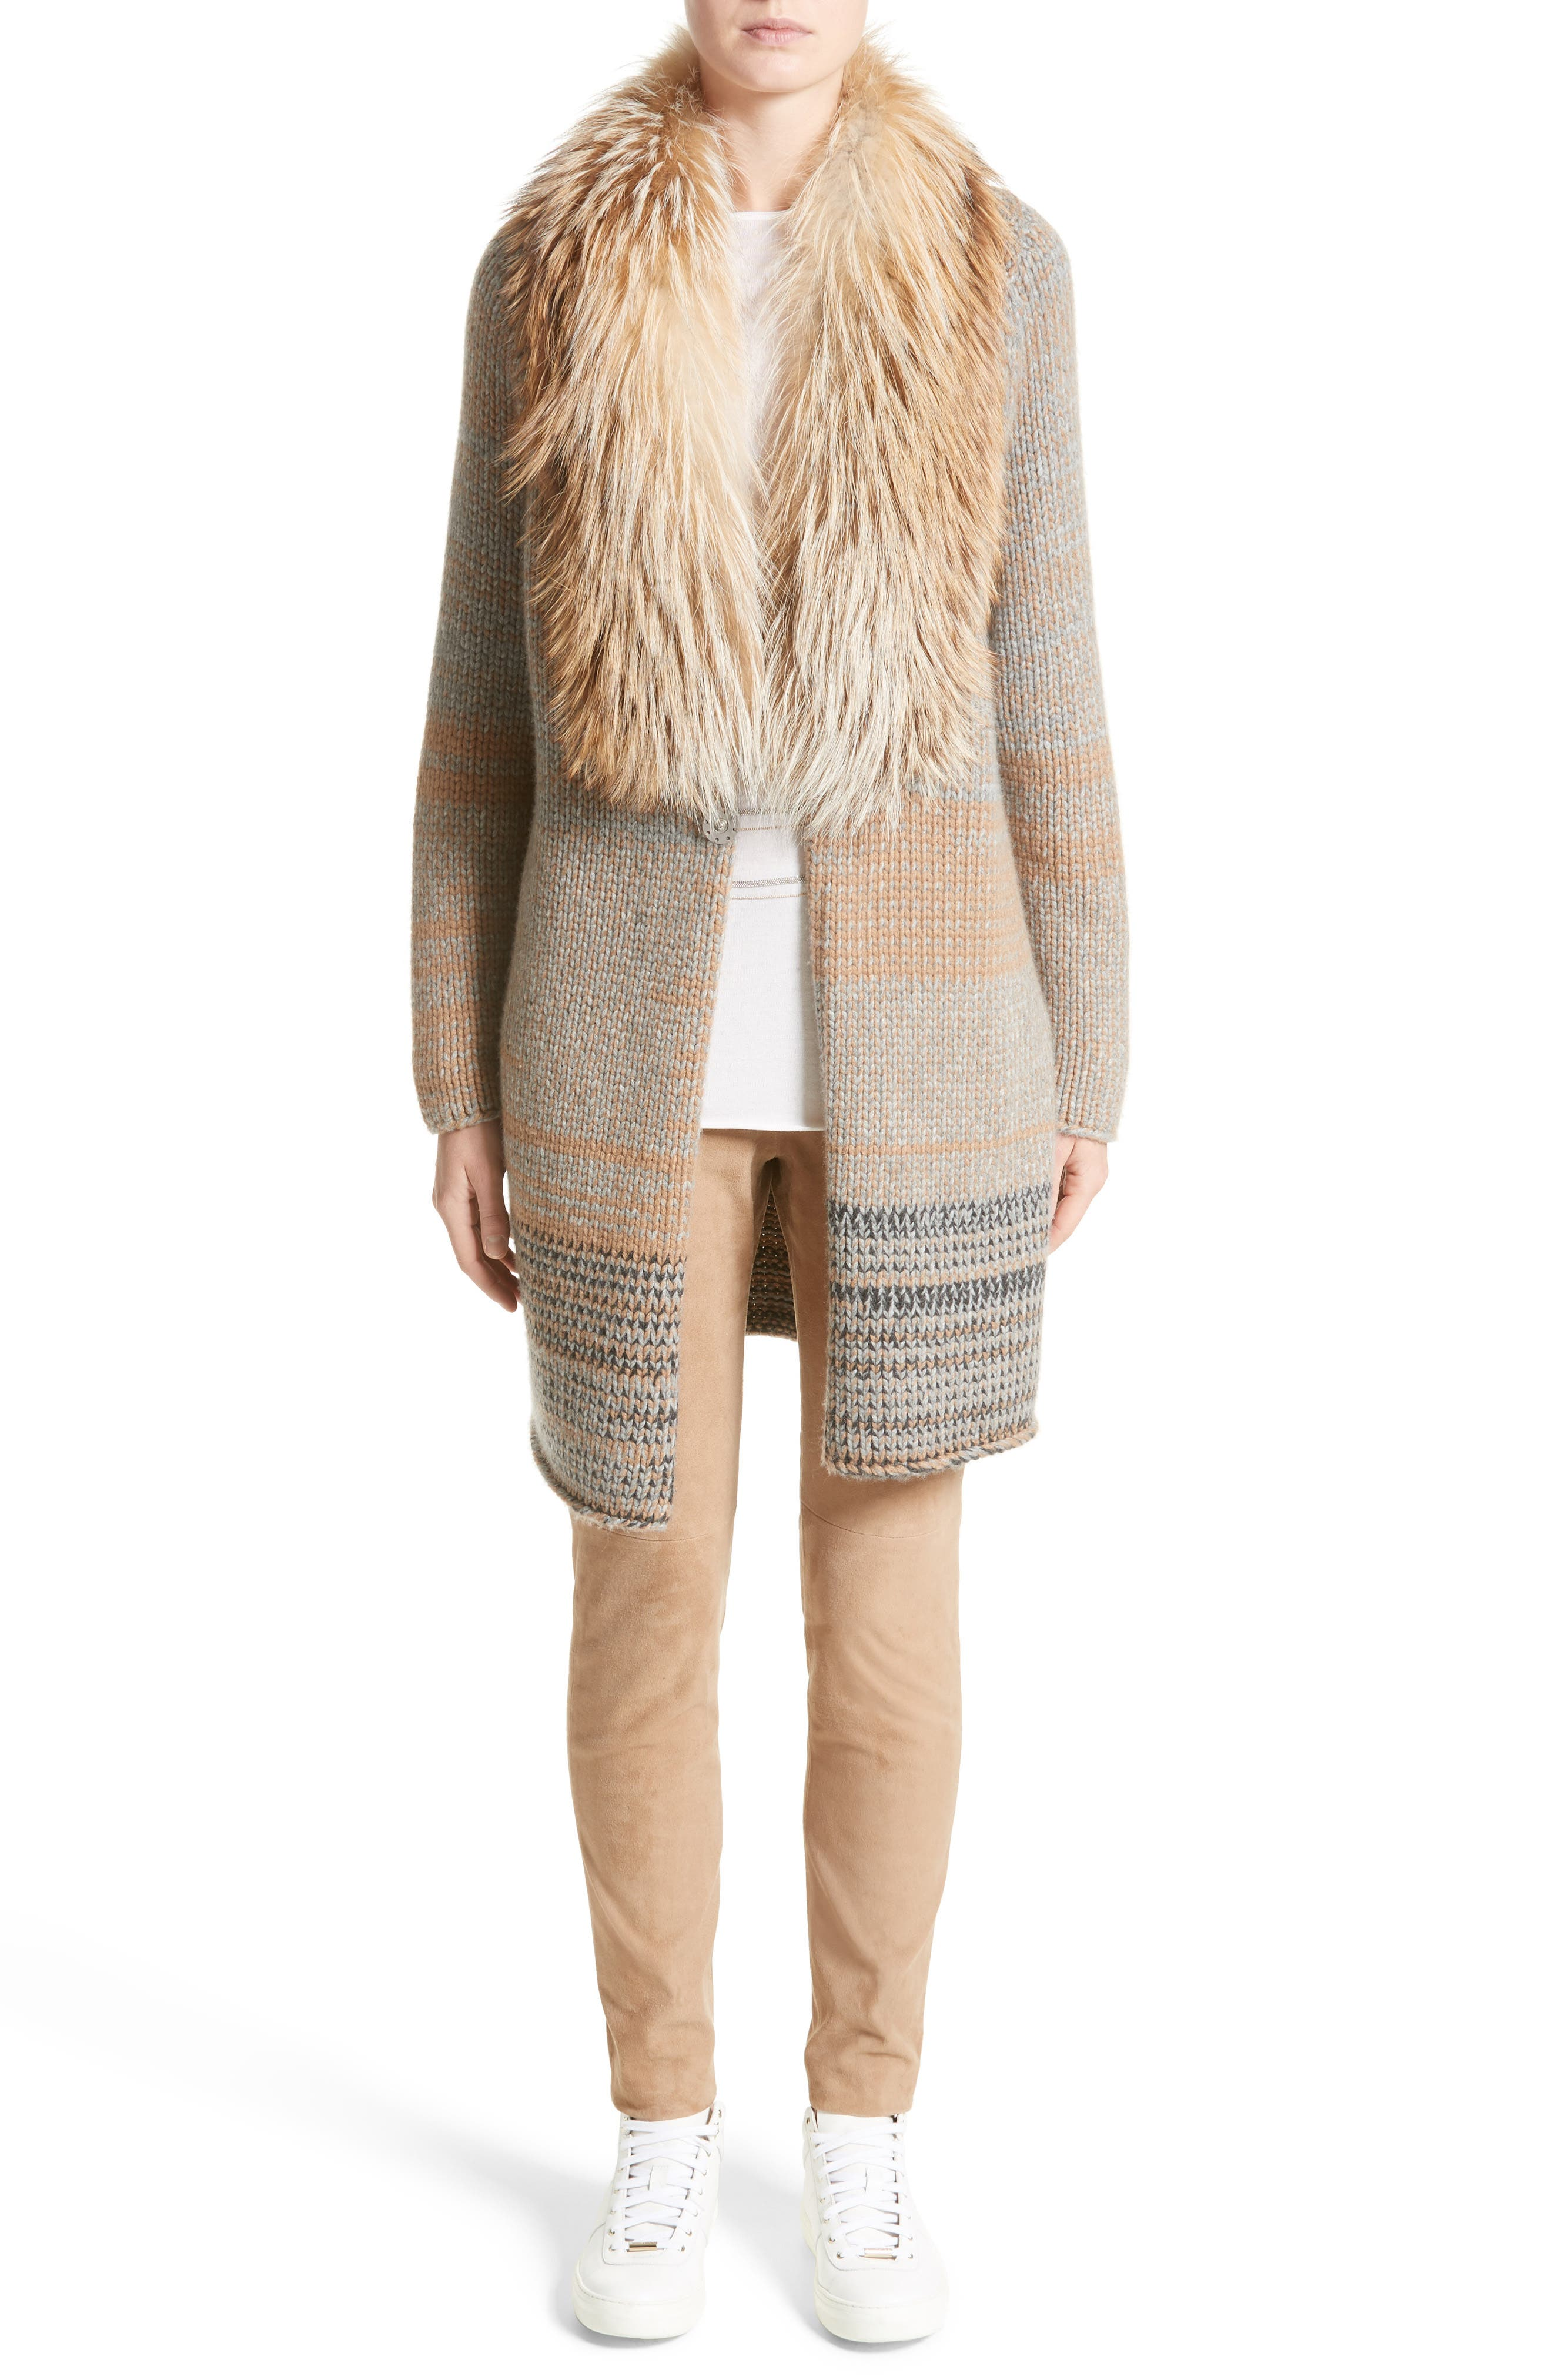 Cashmere Cardigan with Removable Genuine Fox Fur Collar,                             Alternate thumbnail 7, color,                             Camel / Grey Multi